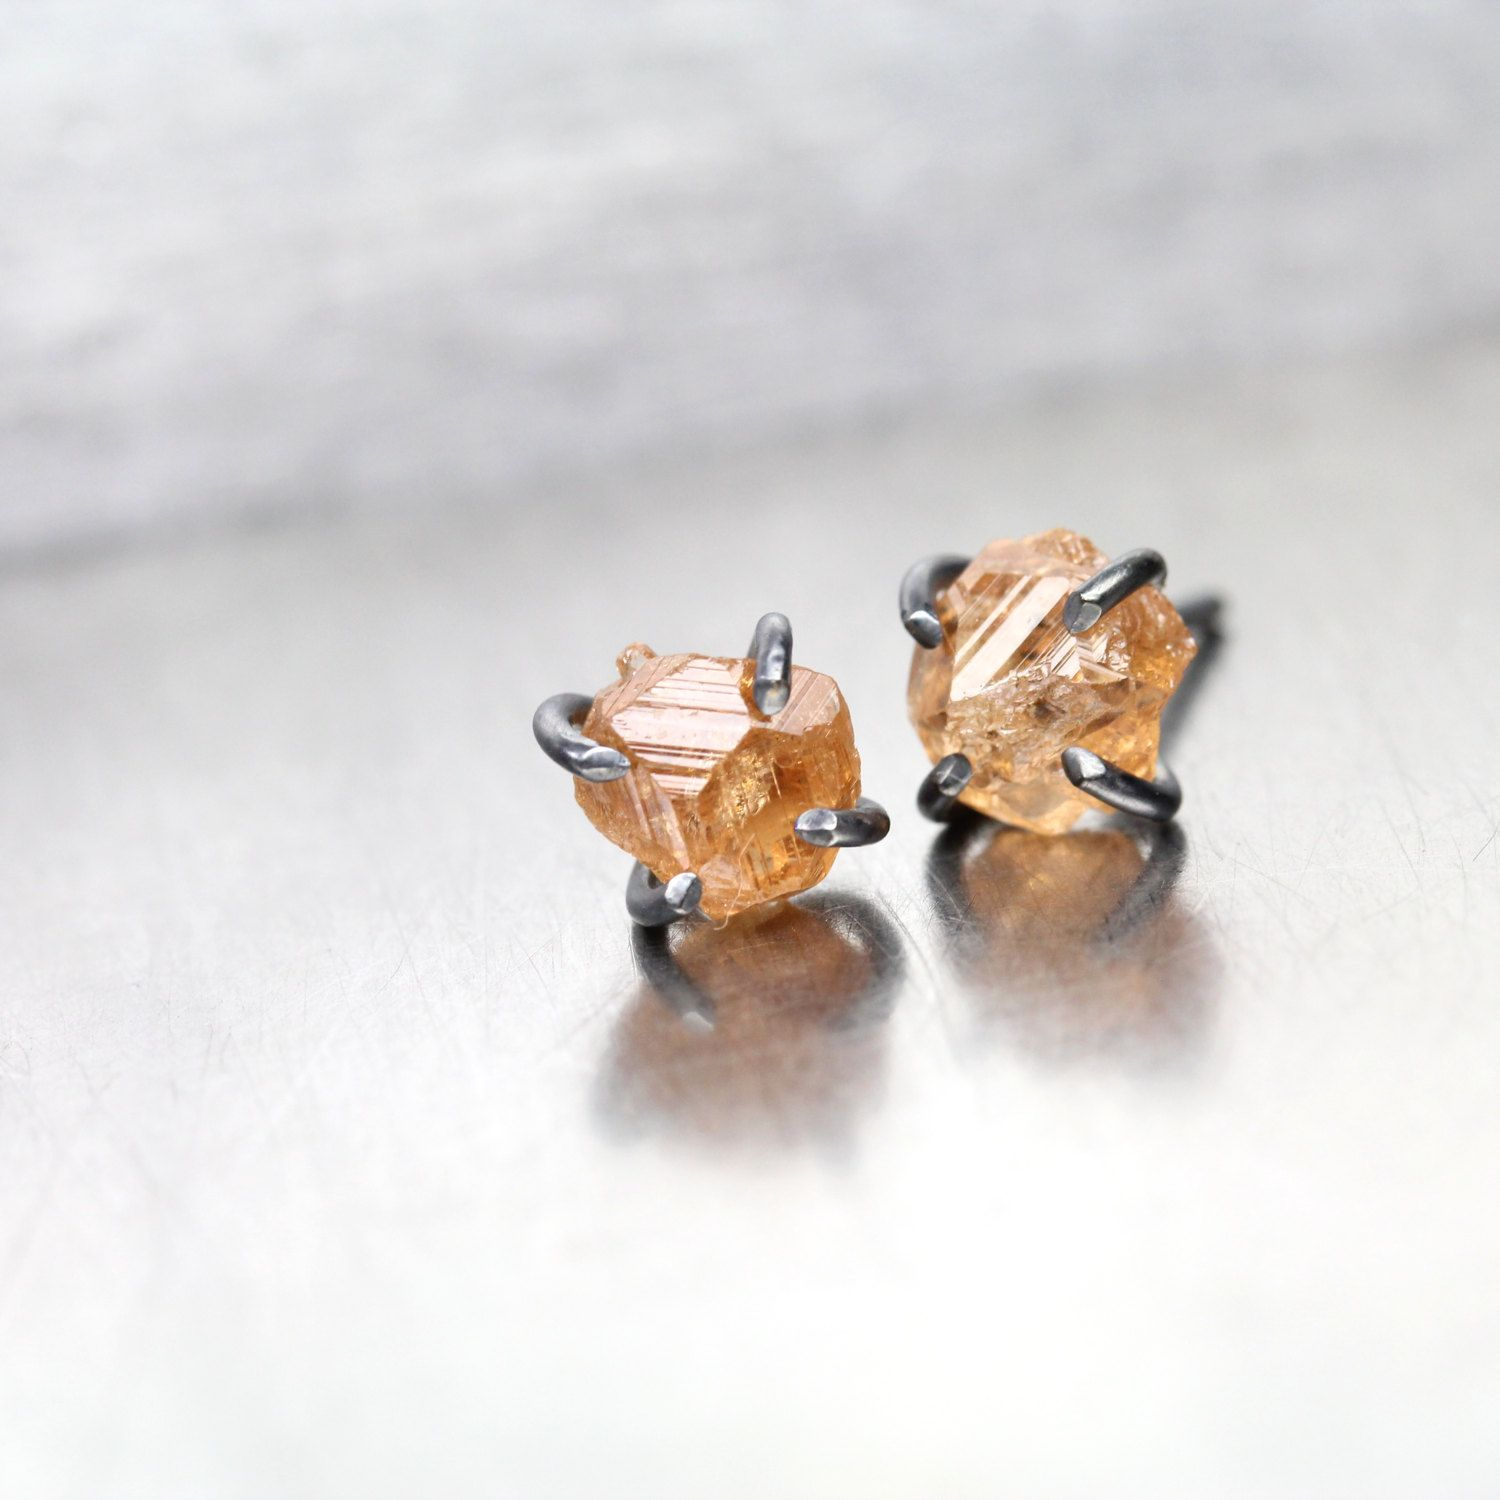 Rough Peach Grossular Garnet Stud Earrings Oxidized Silver Gs Rustic Gemstones Quebec Canada January Birthstone Brown Orange Goldrocks